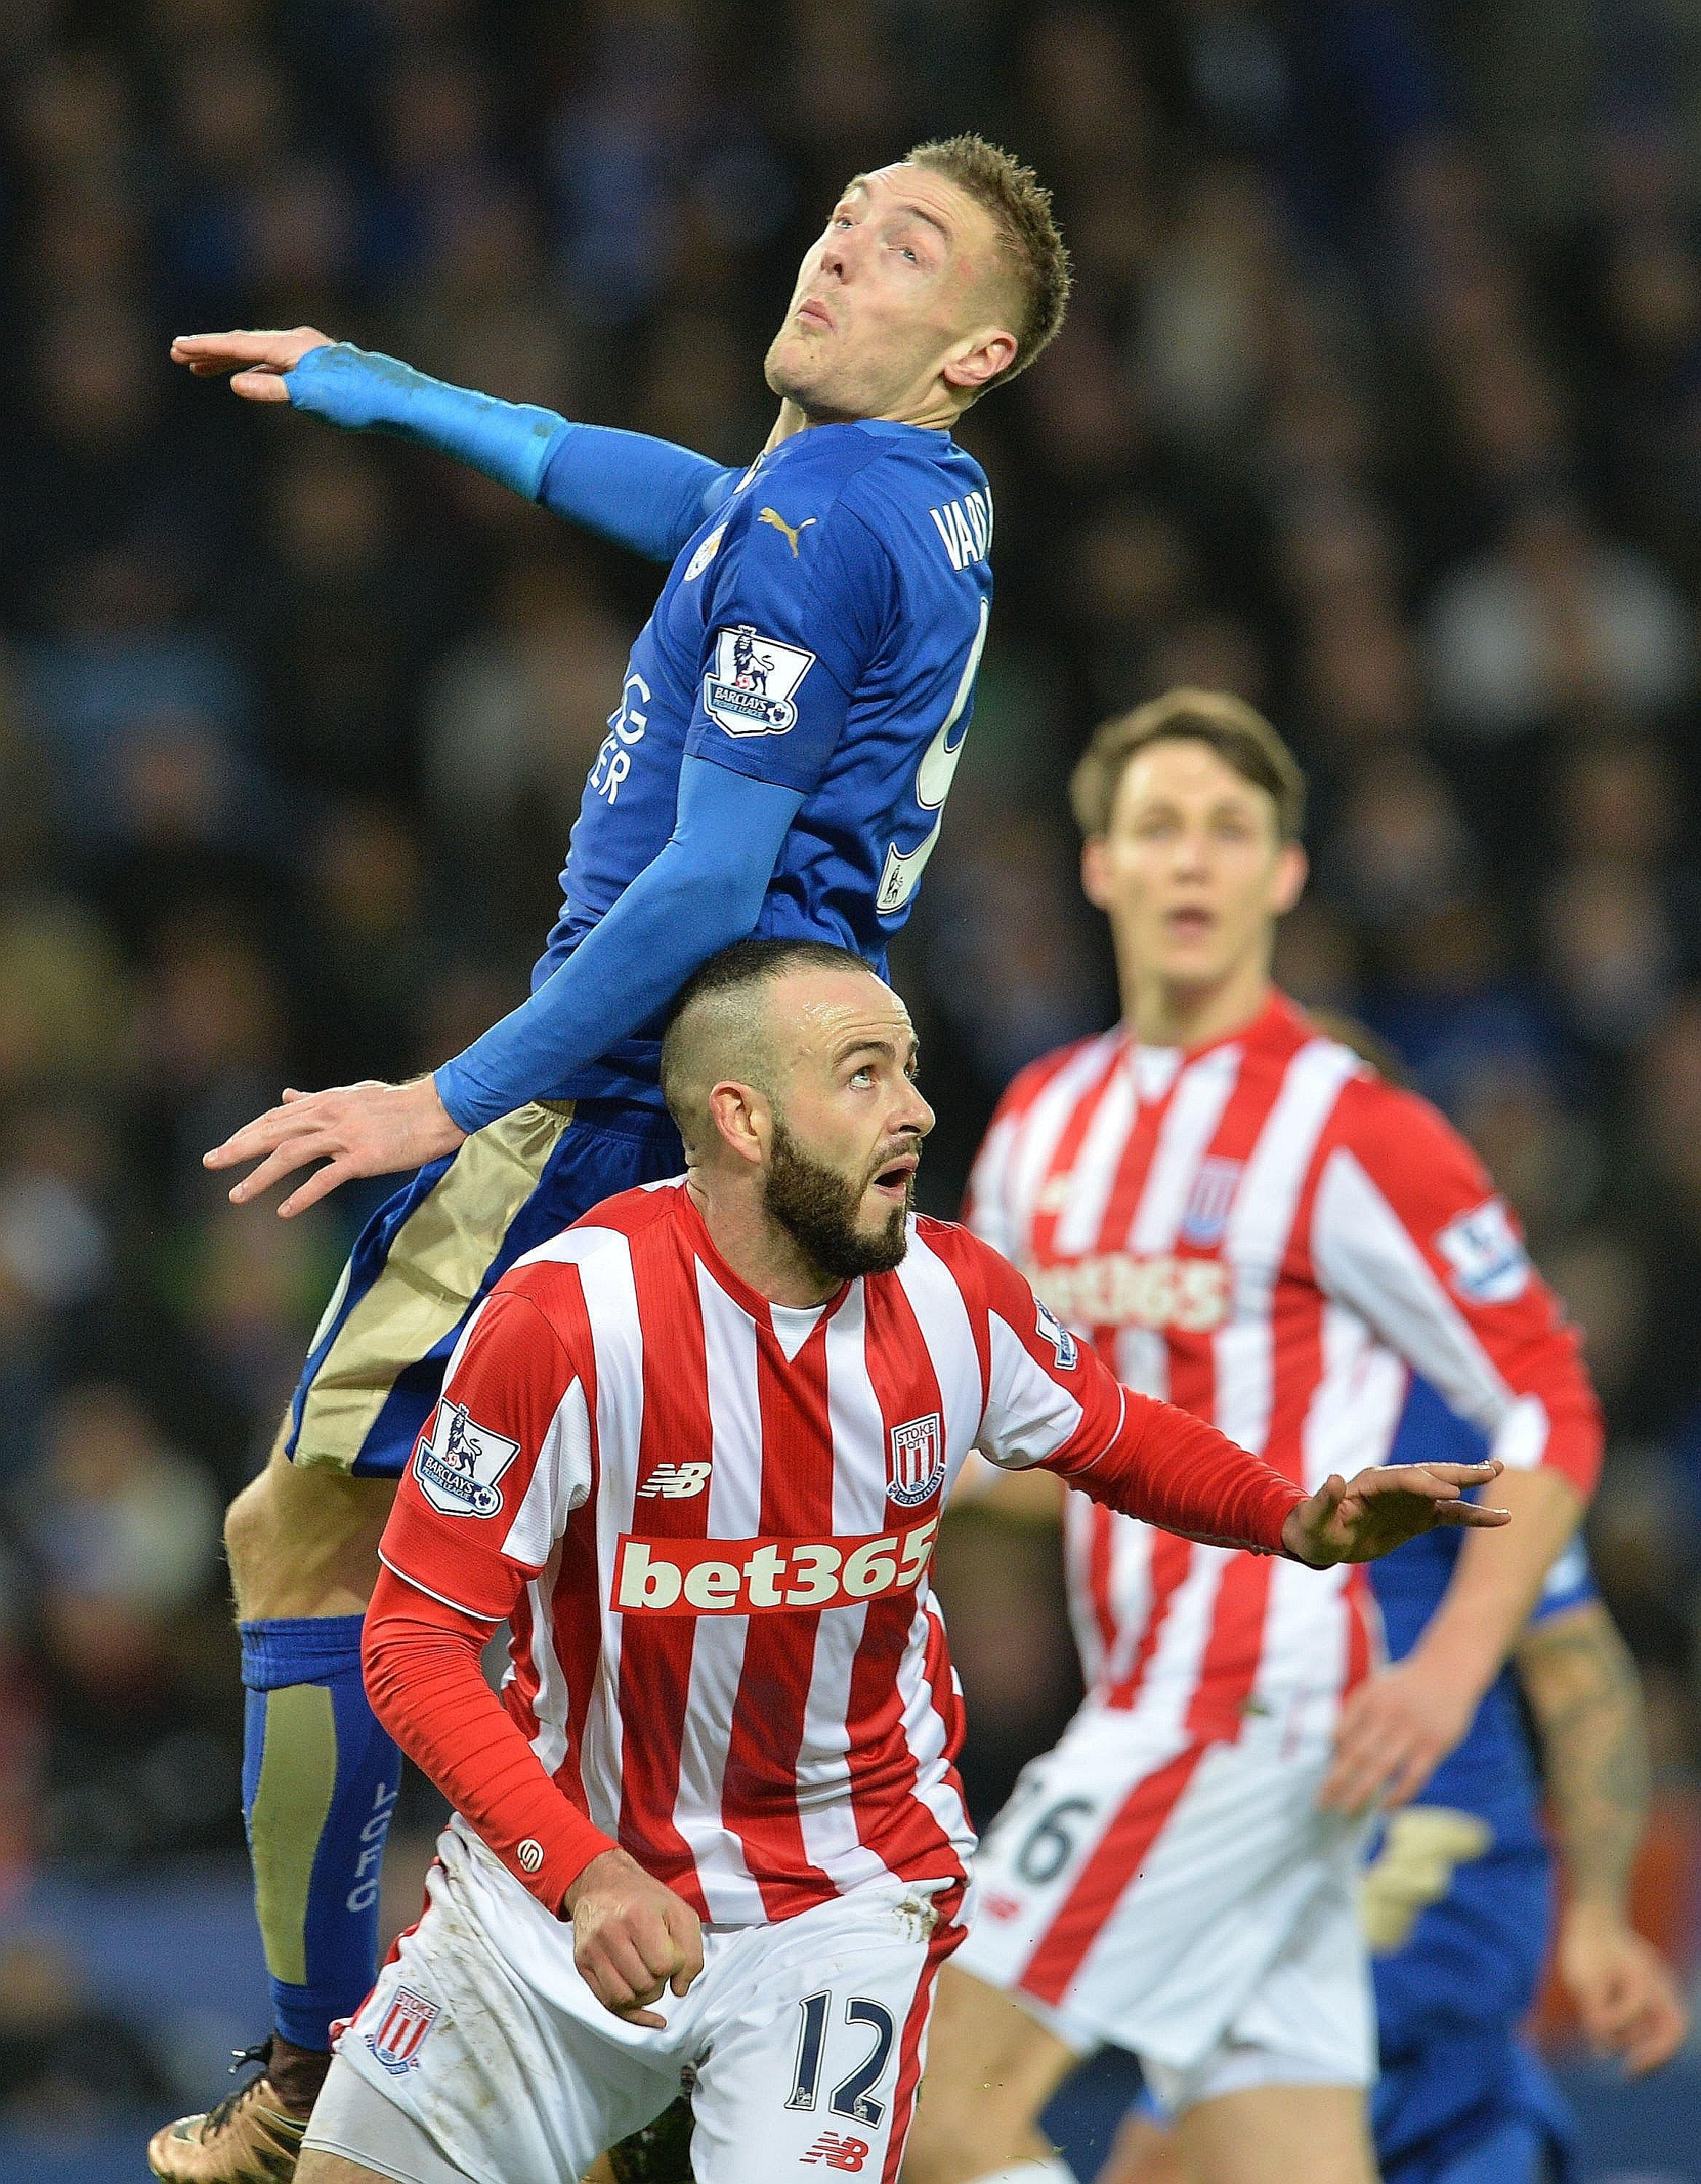 Leicester City's Jamie Vardy (above) attempting to beat Stoke City's Marc Wilson to the ball at the King Power Stadium. The Foxes won the match 3-0, with Vardy scoring the second goal.